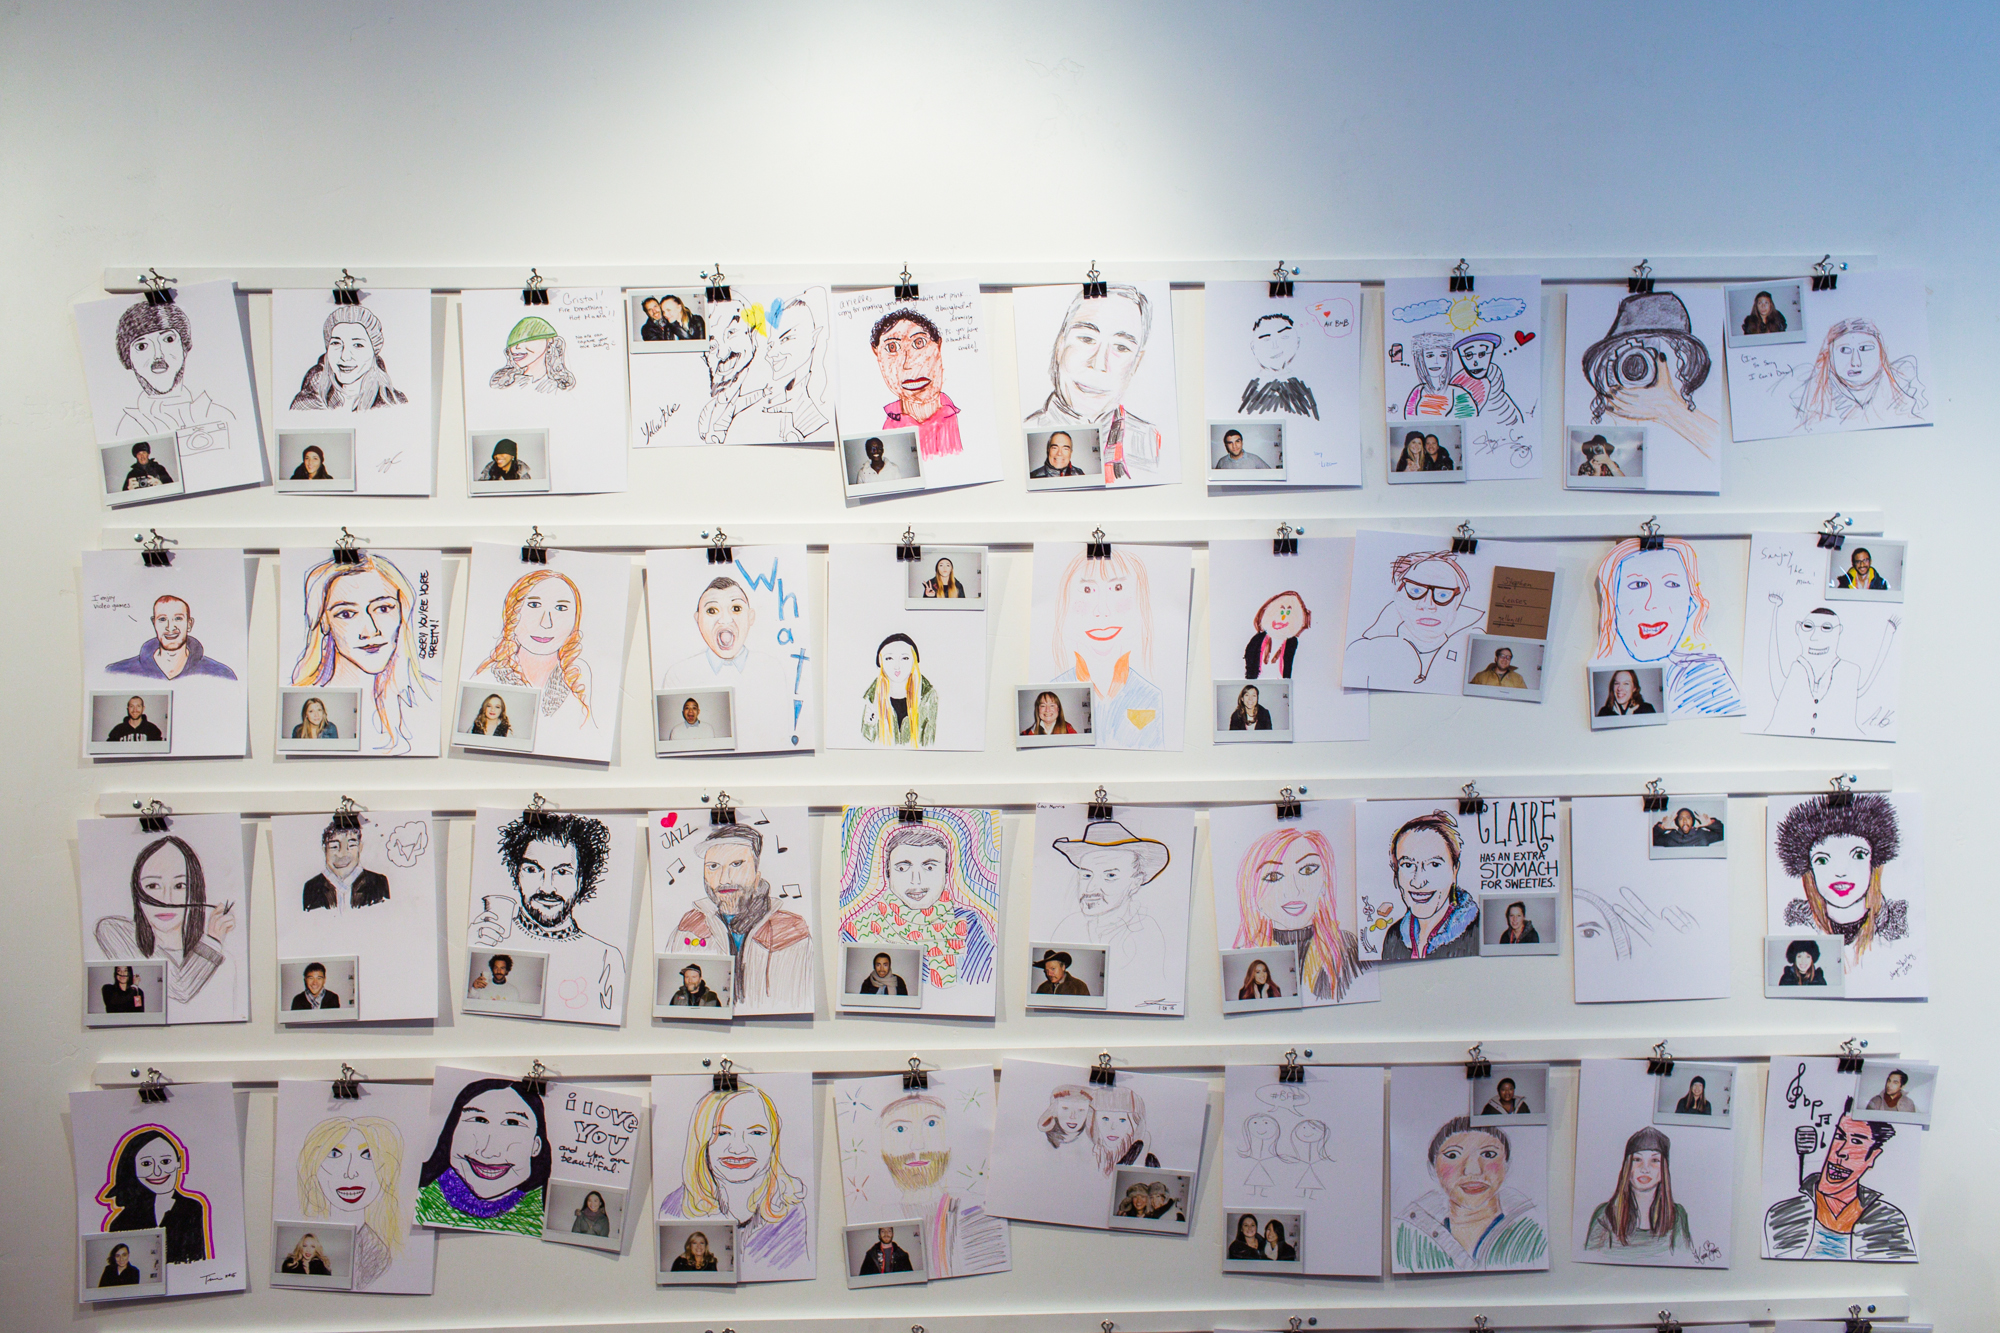 Ivan Cash's Strangers Drawing Strangers exhibit at the Airbnb Haus